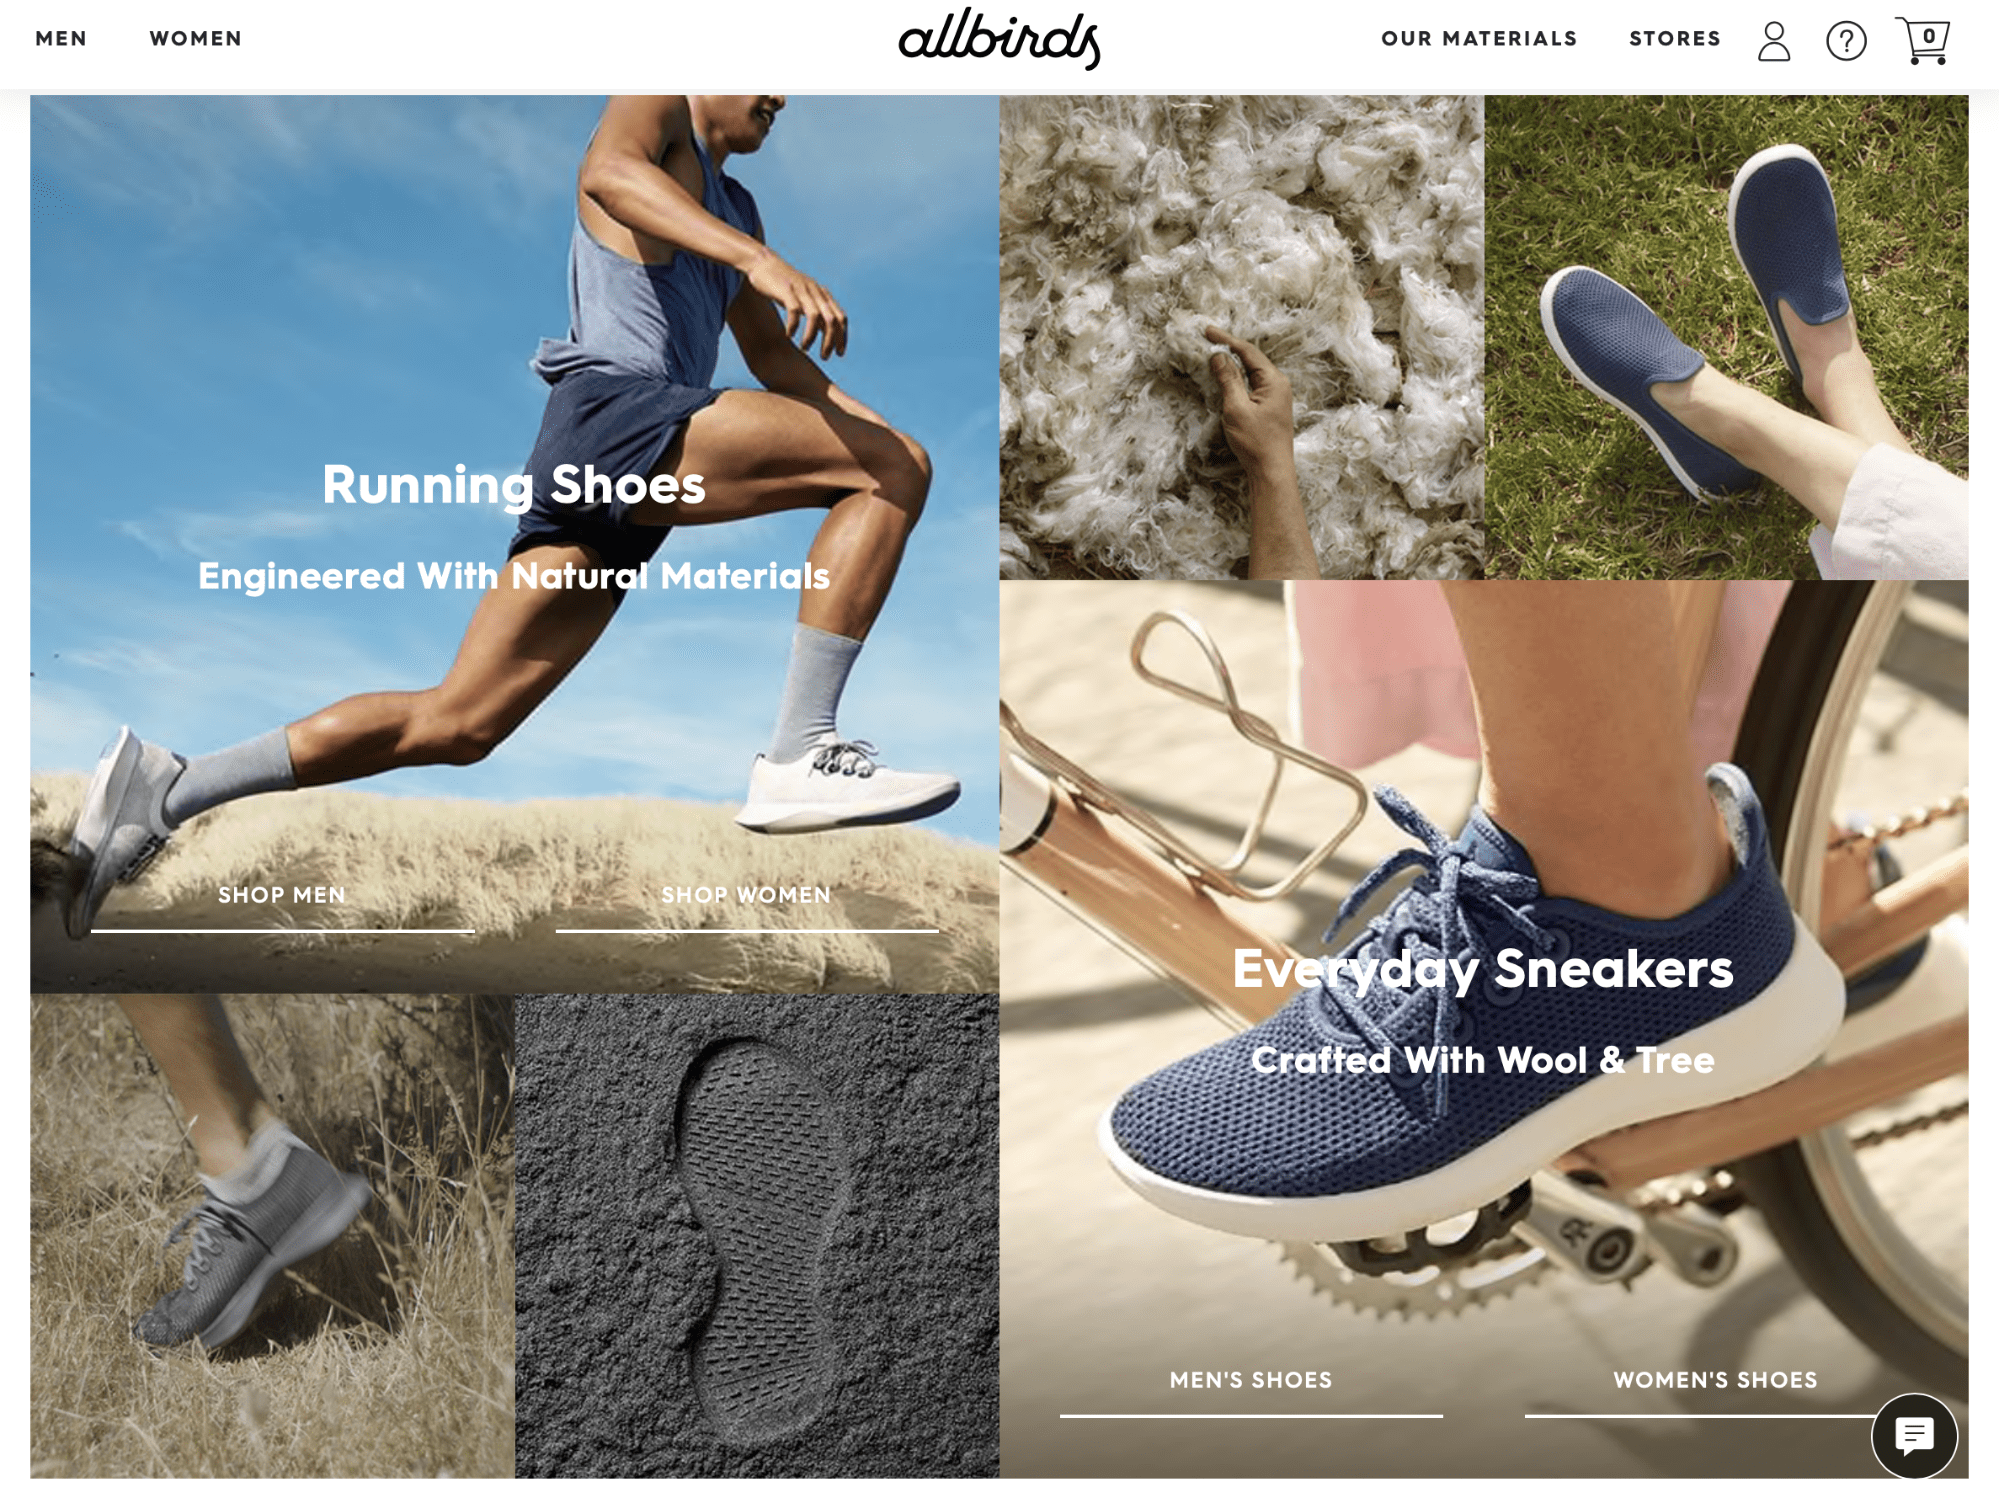 Omnichannel new normal Allbirds